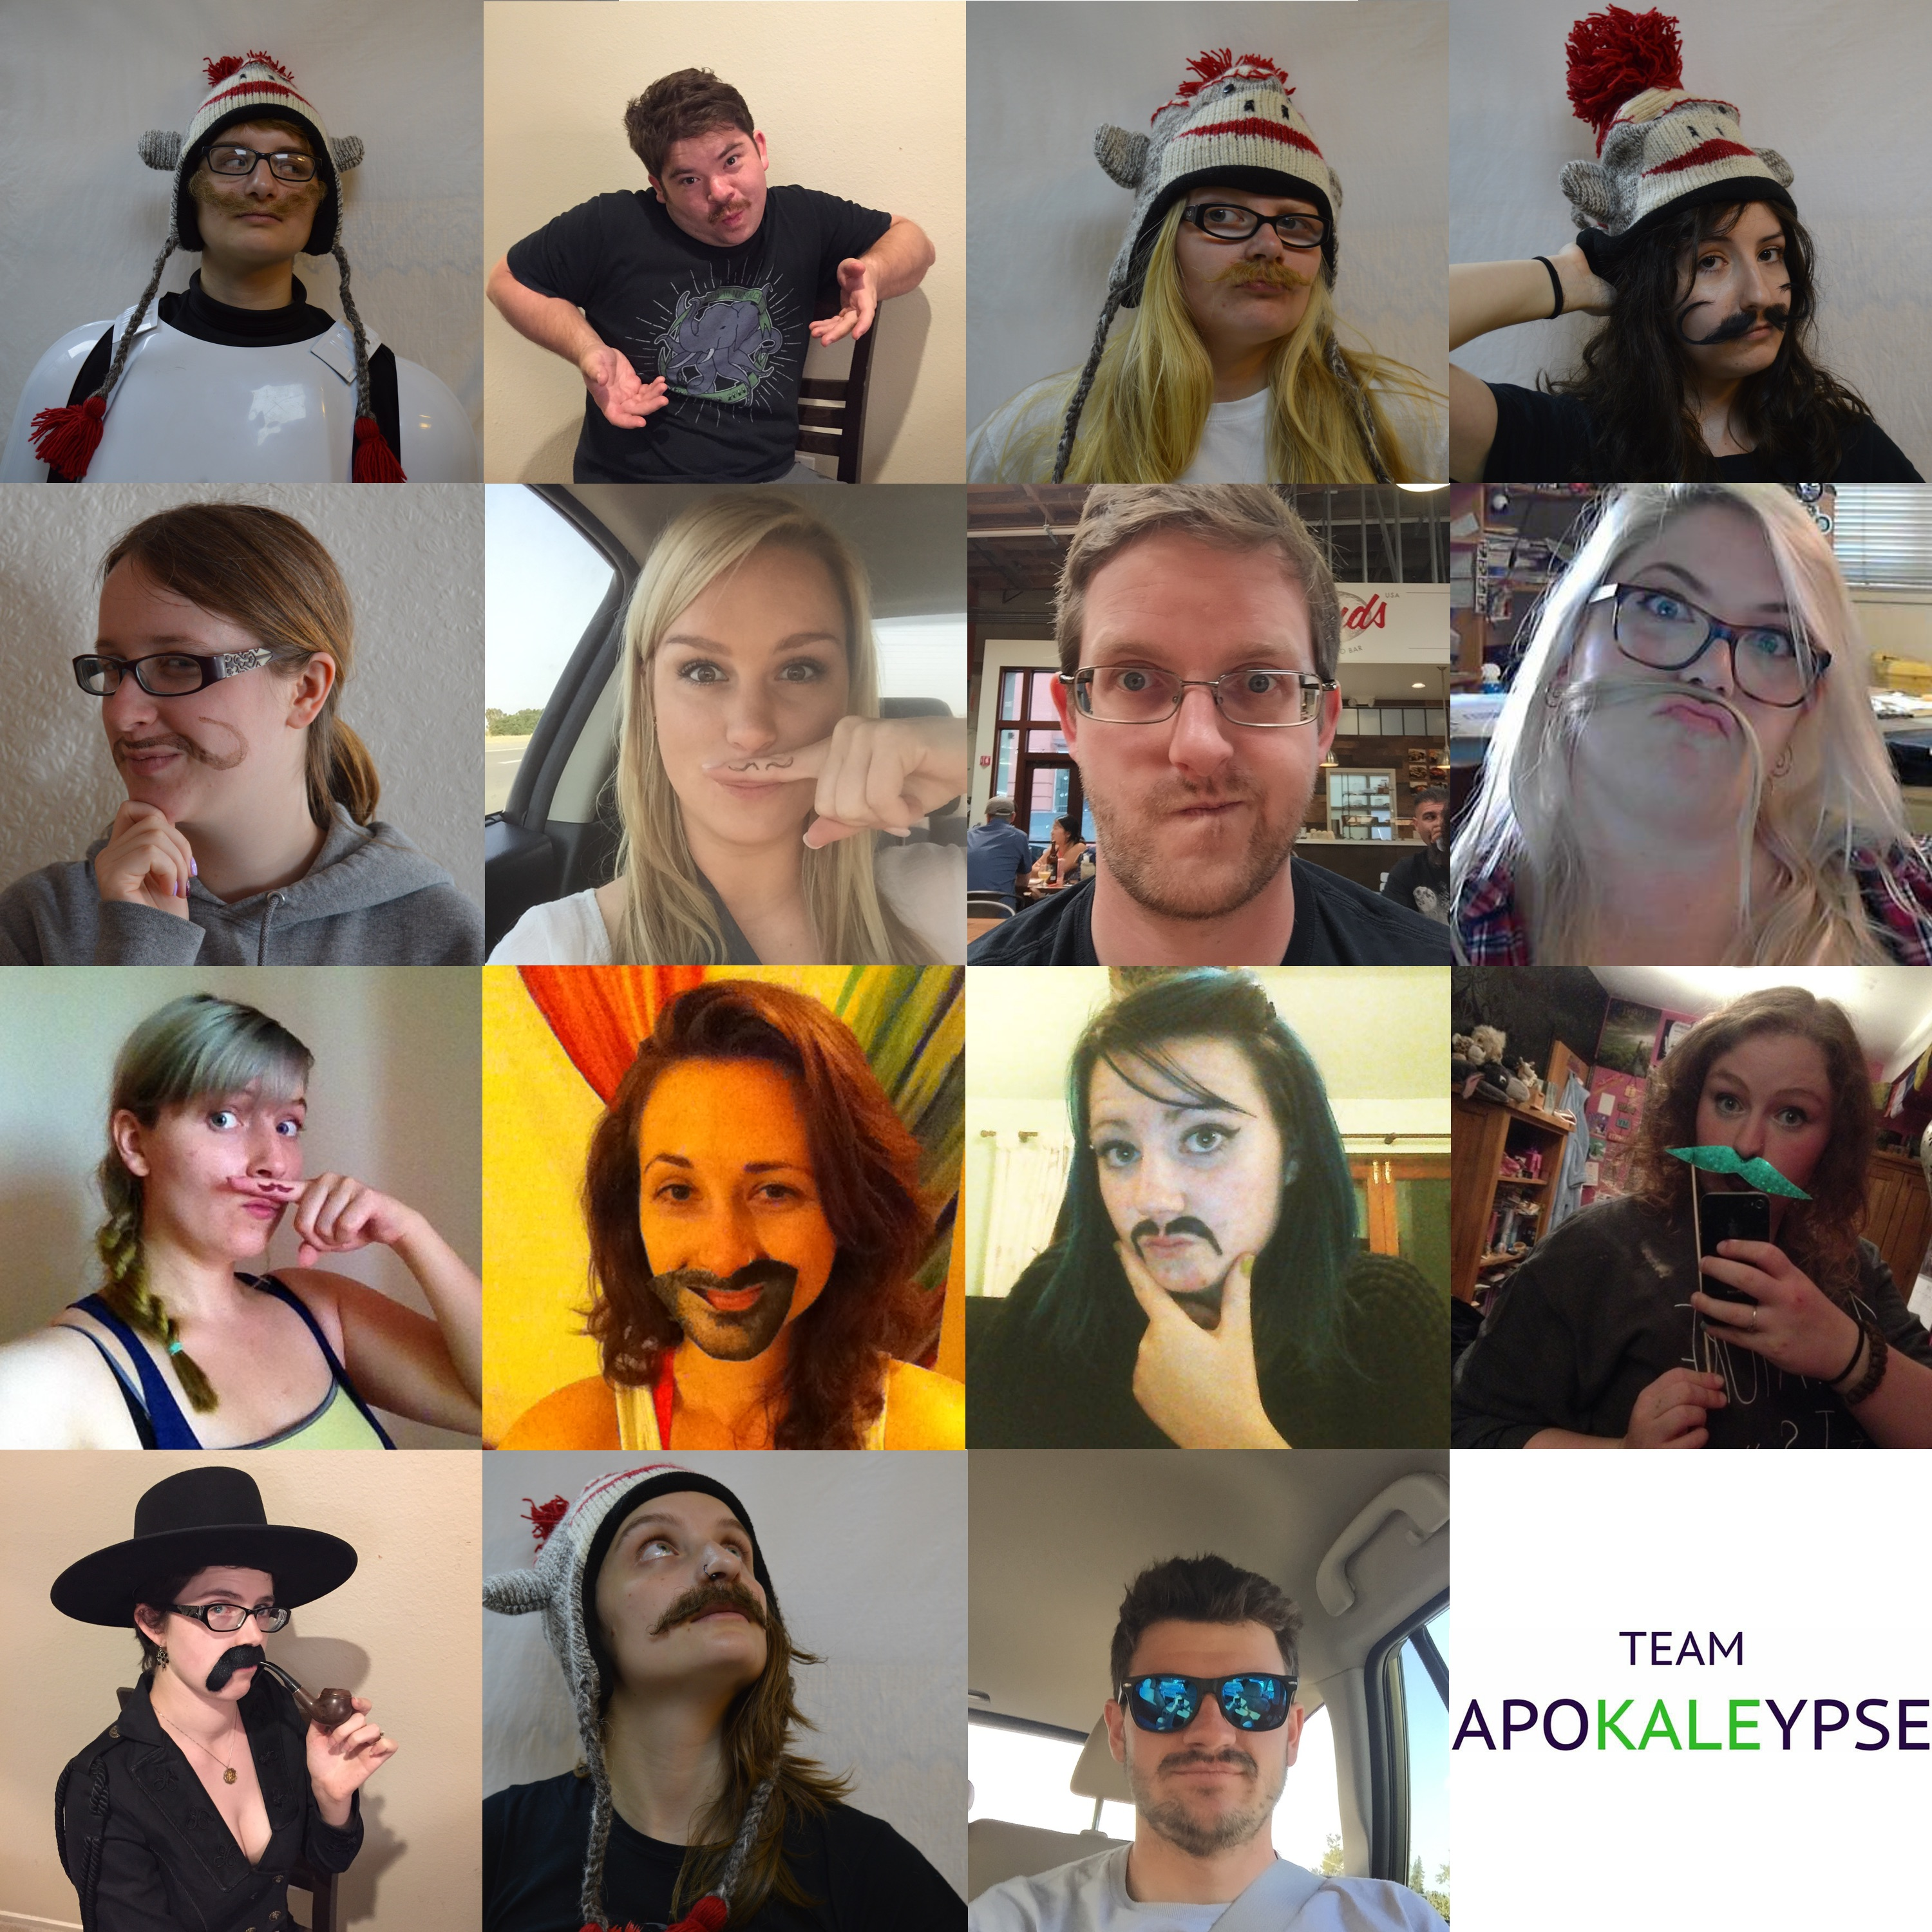 GISHWHES 2015 - Team Apokaleypse - Item 34 - Mustache Group Photo